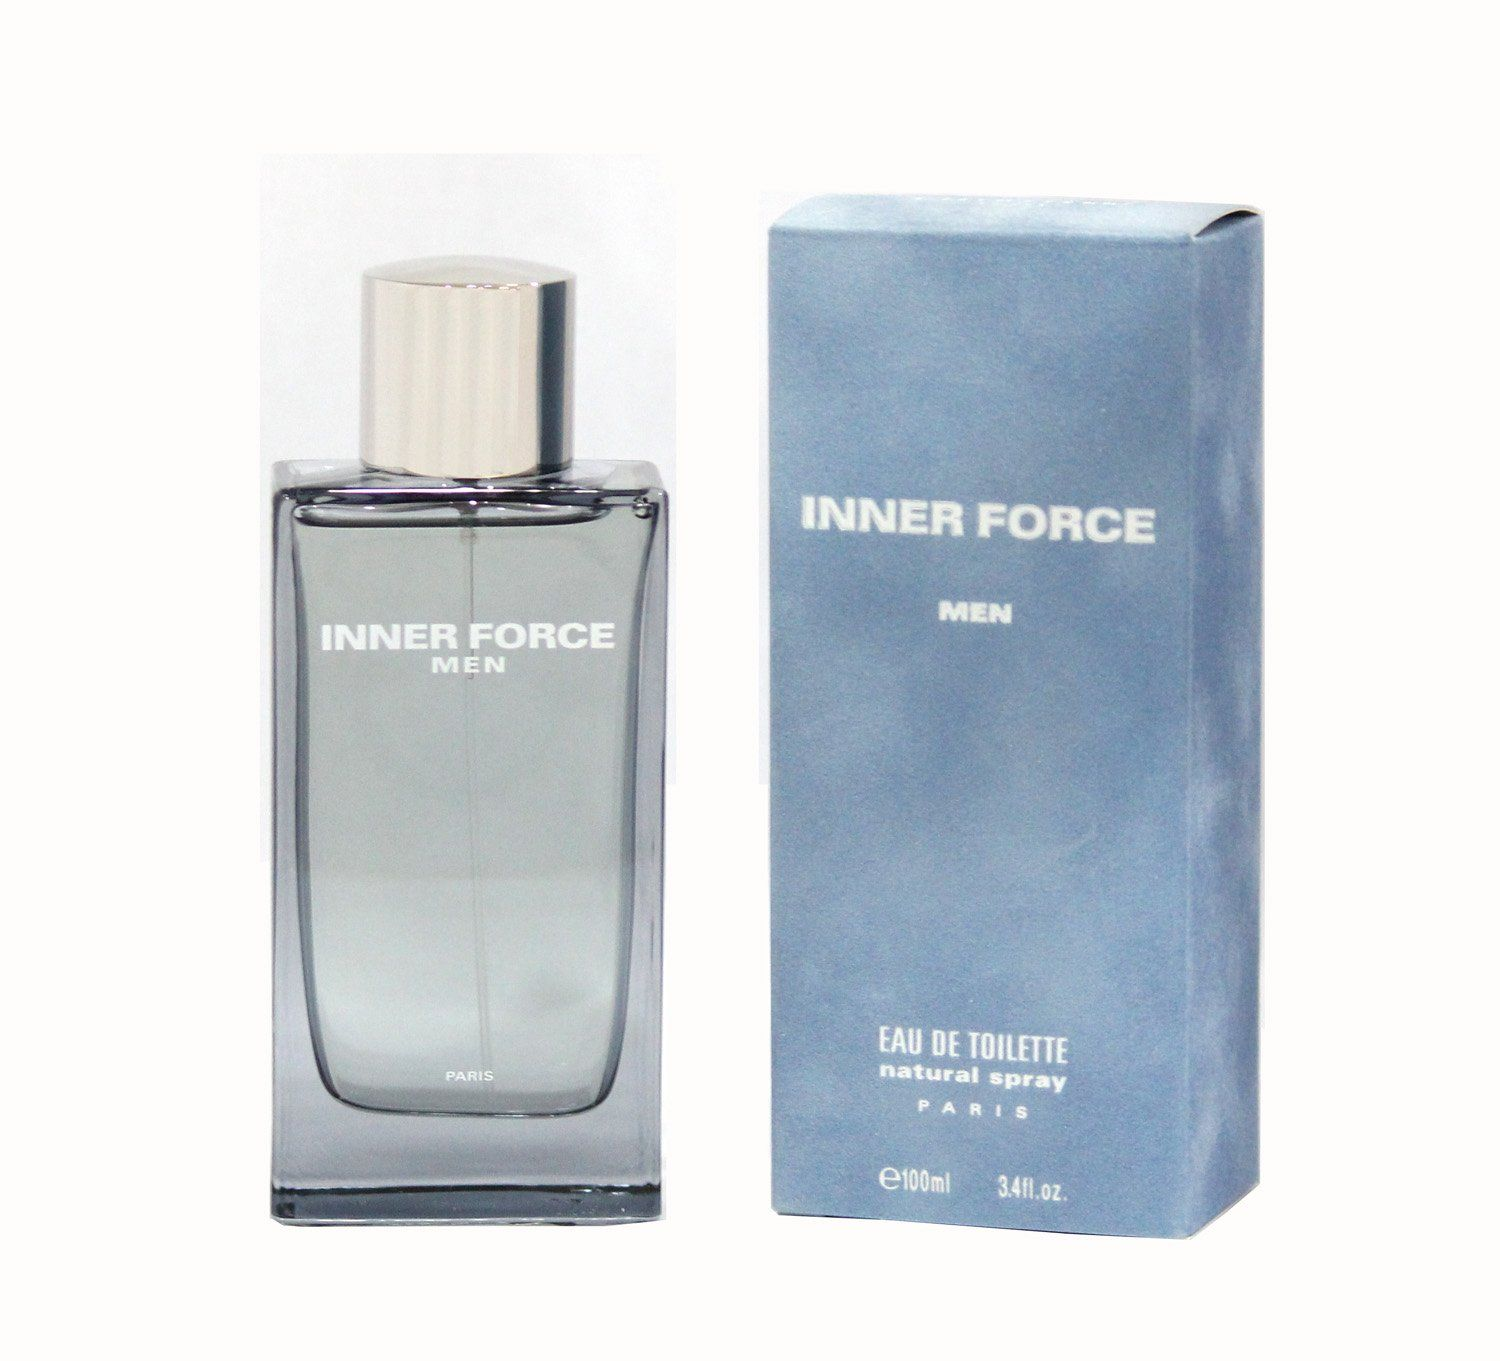 Inner Force In 2018 Products Pinterest Perfume Ts And Me Gustas Parfum Original Amouage Reflection For Men By Glenn Perri Paris 34 Oz Edt Spray